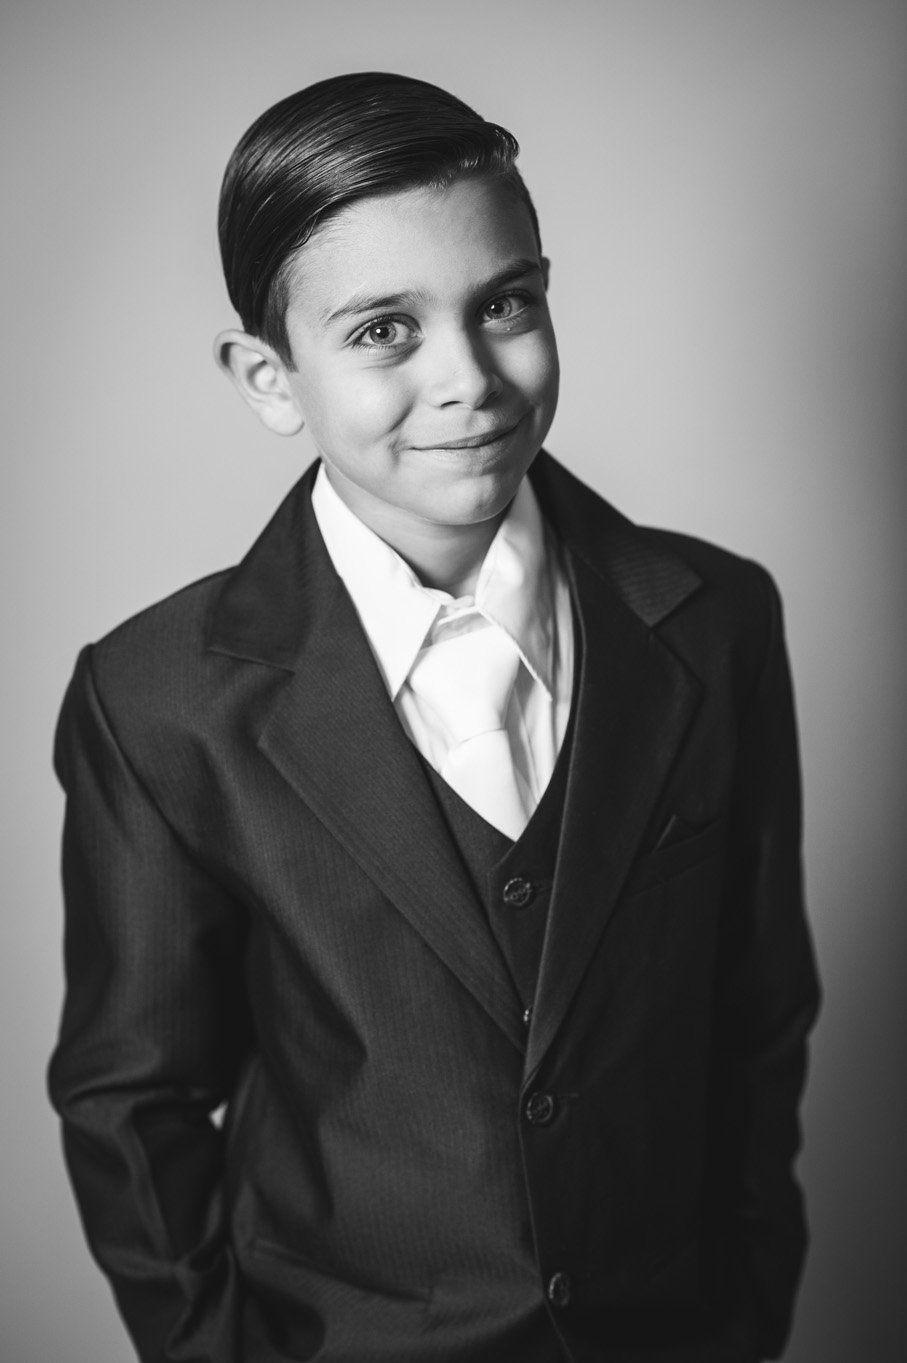 first communion portrait in Westchester County, NY by Erin Borzellino